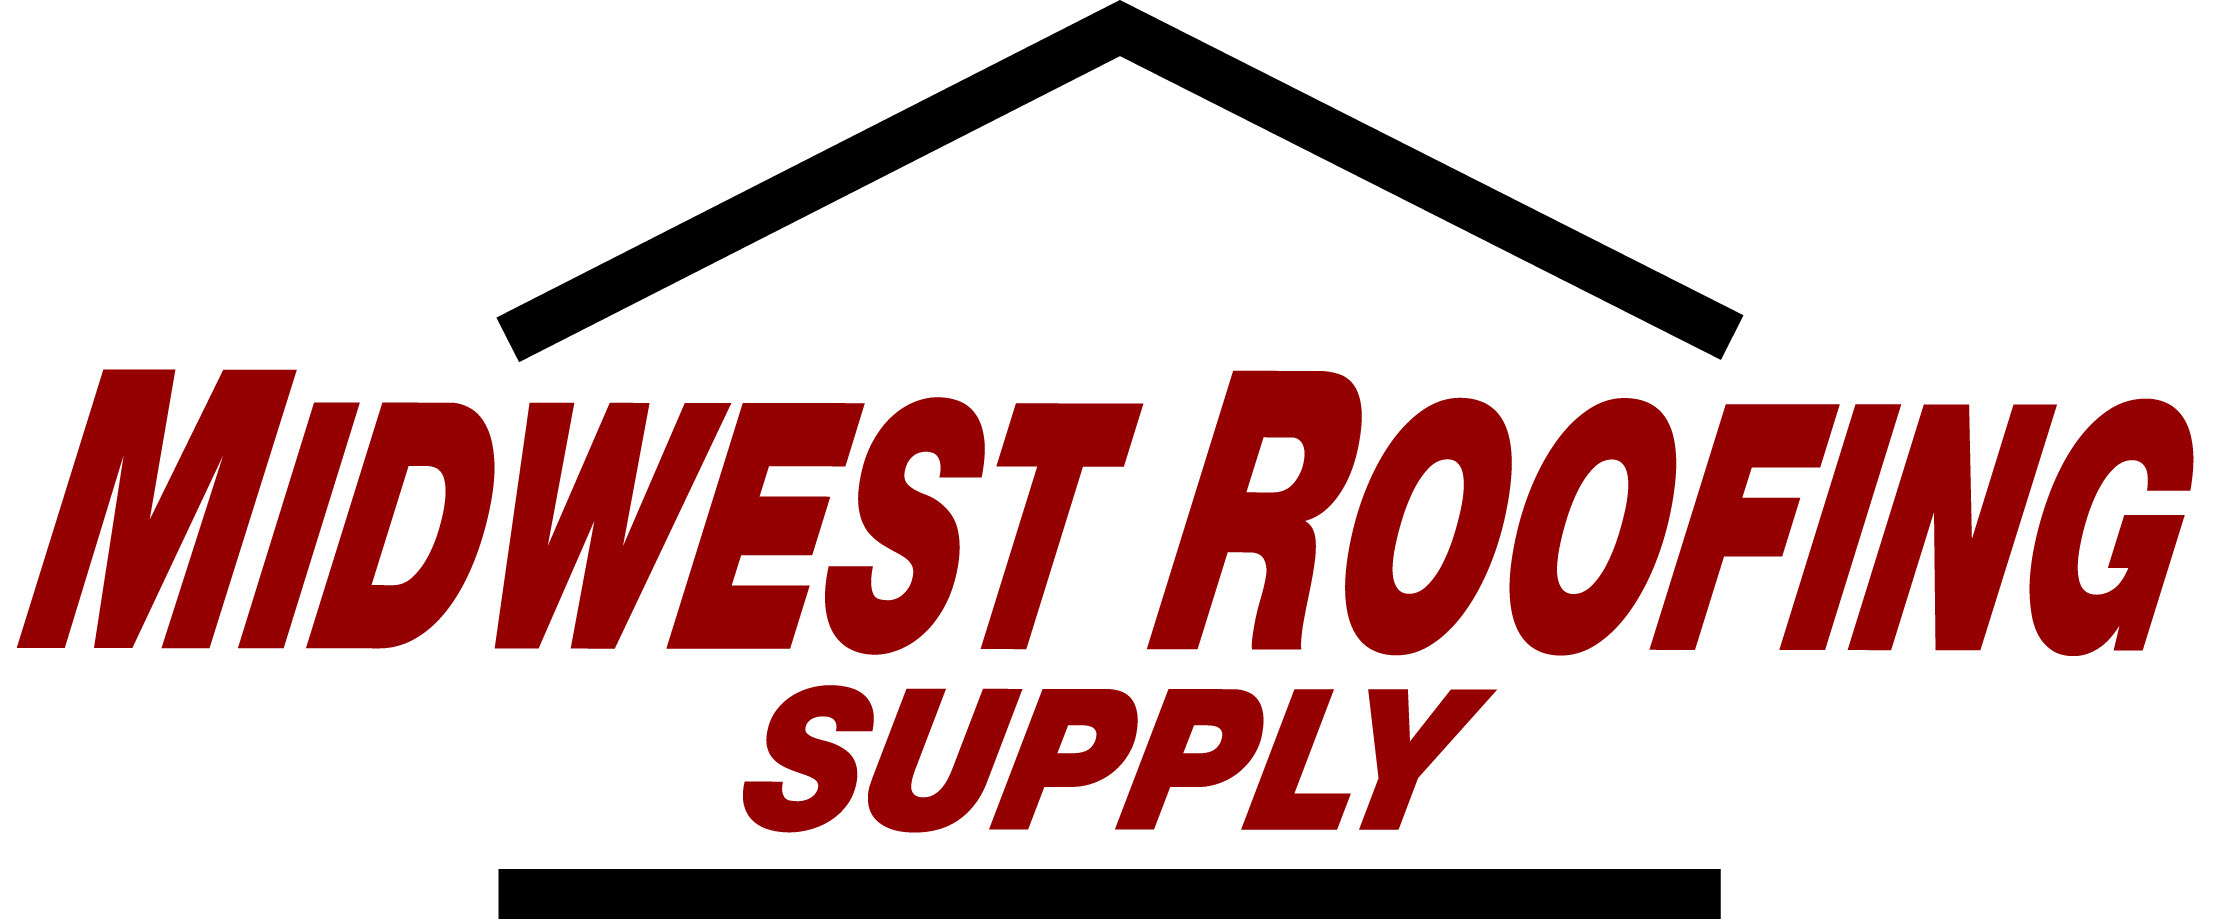 Company Logo Midwest Roofing Supply